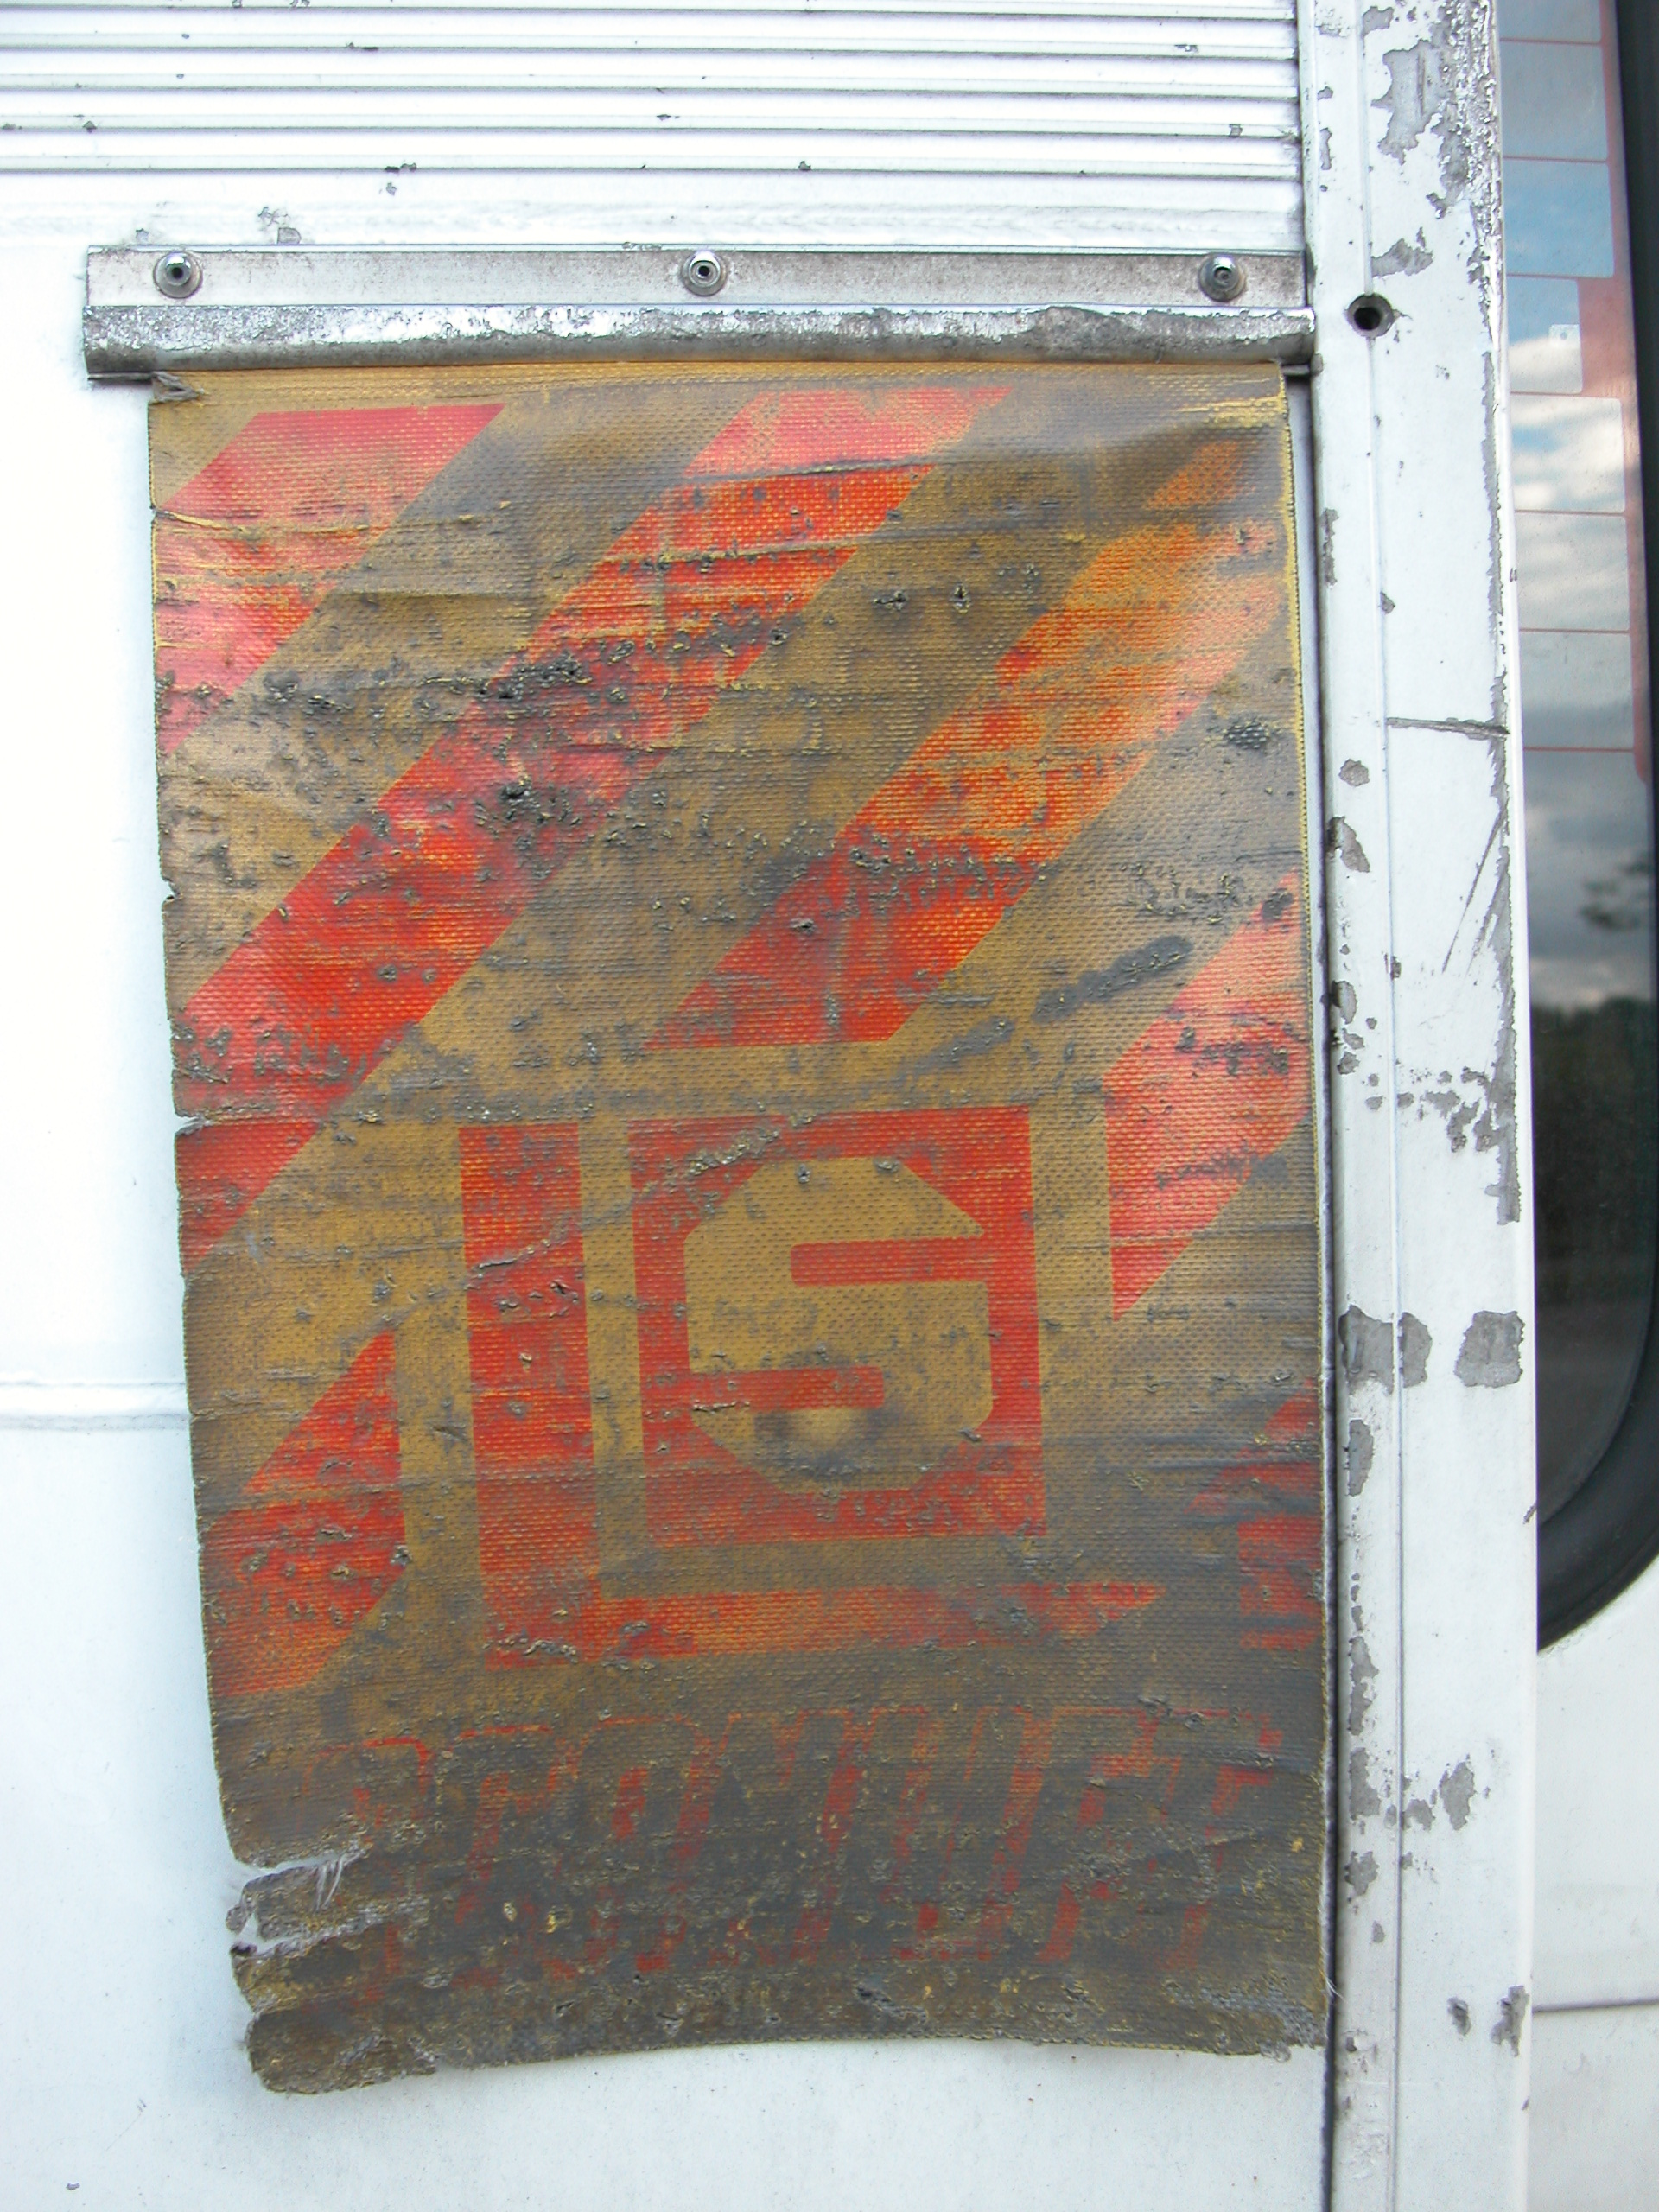 plastic warning flag on the back of a truck red and yellow